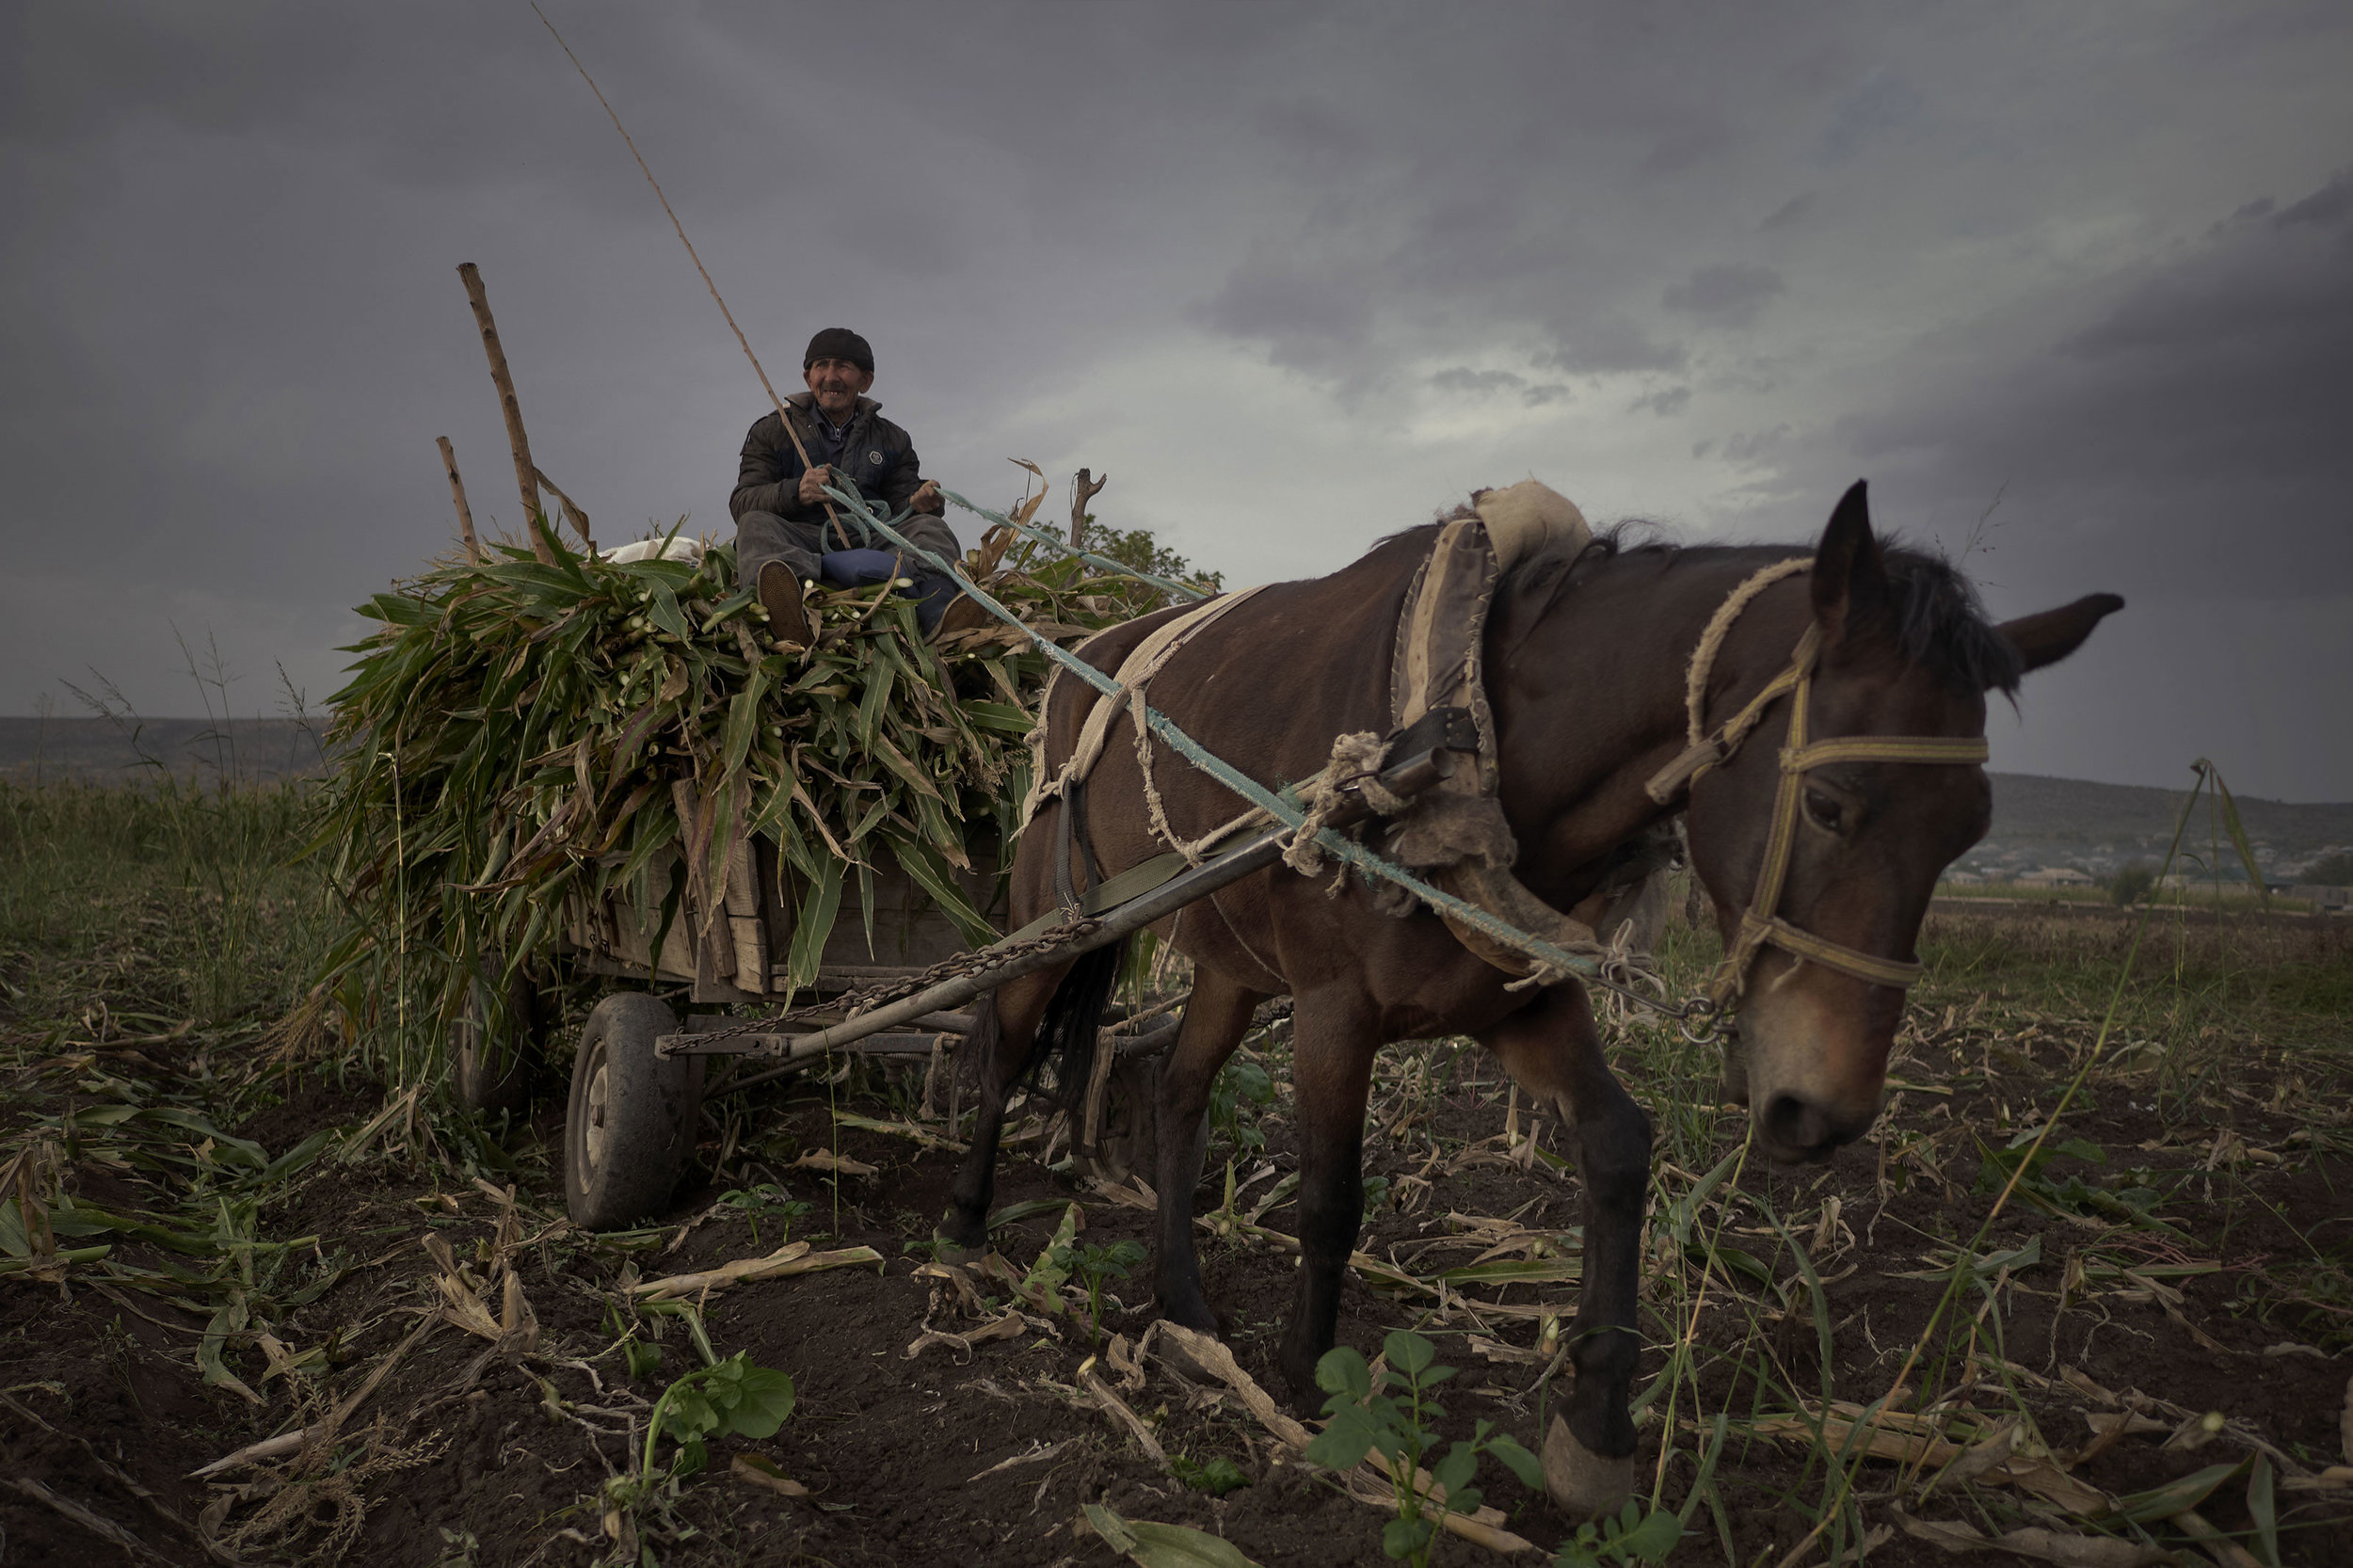 Azeri Georgian man on a horse with corn harvest